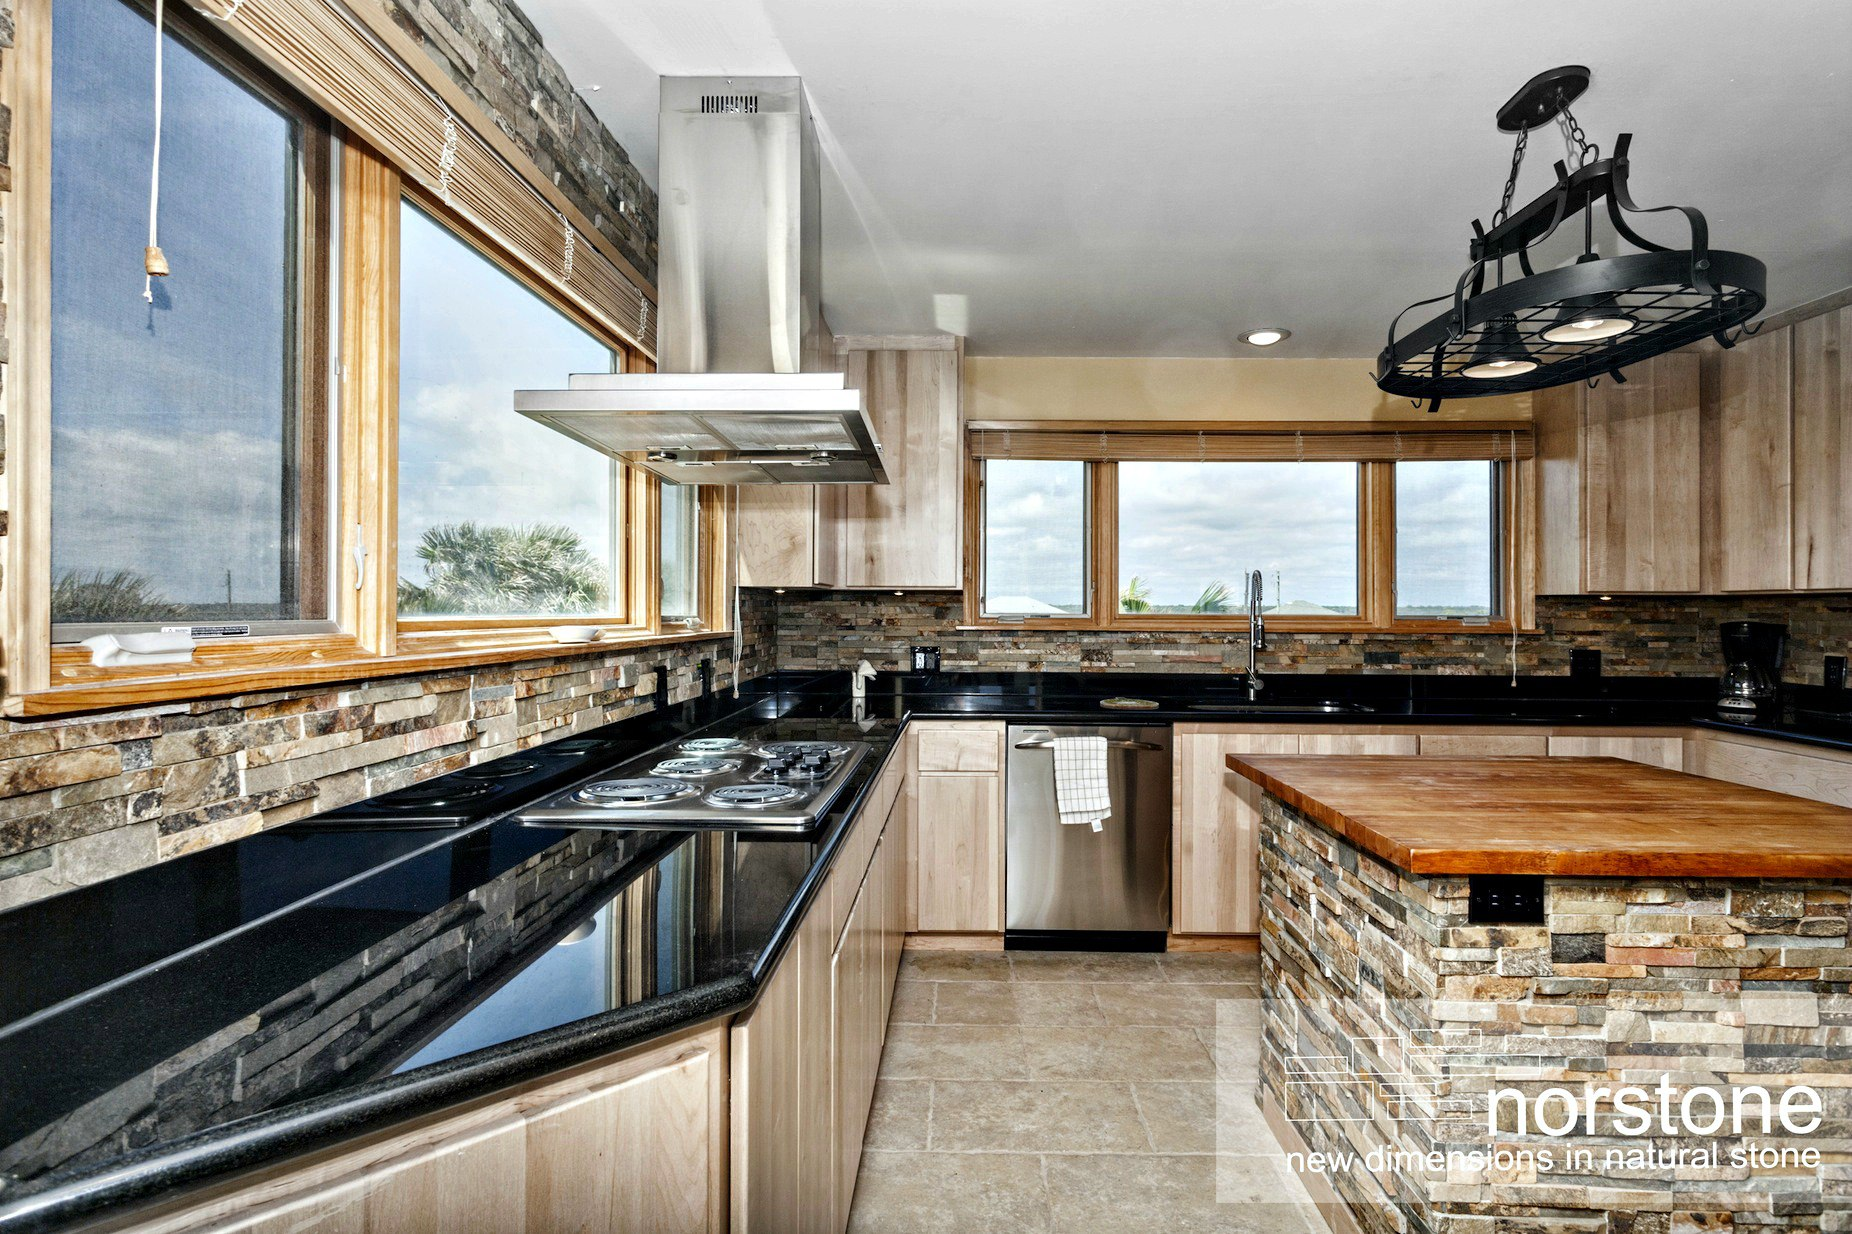 install backsplash install kitchen backsplash install backsplash install kitchen backsplash